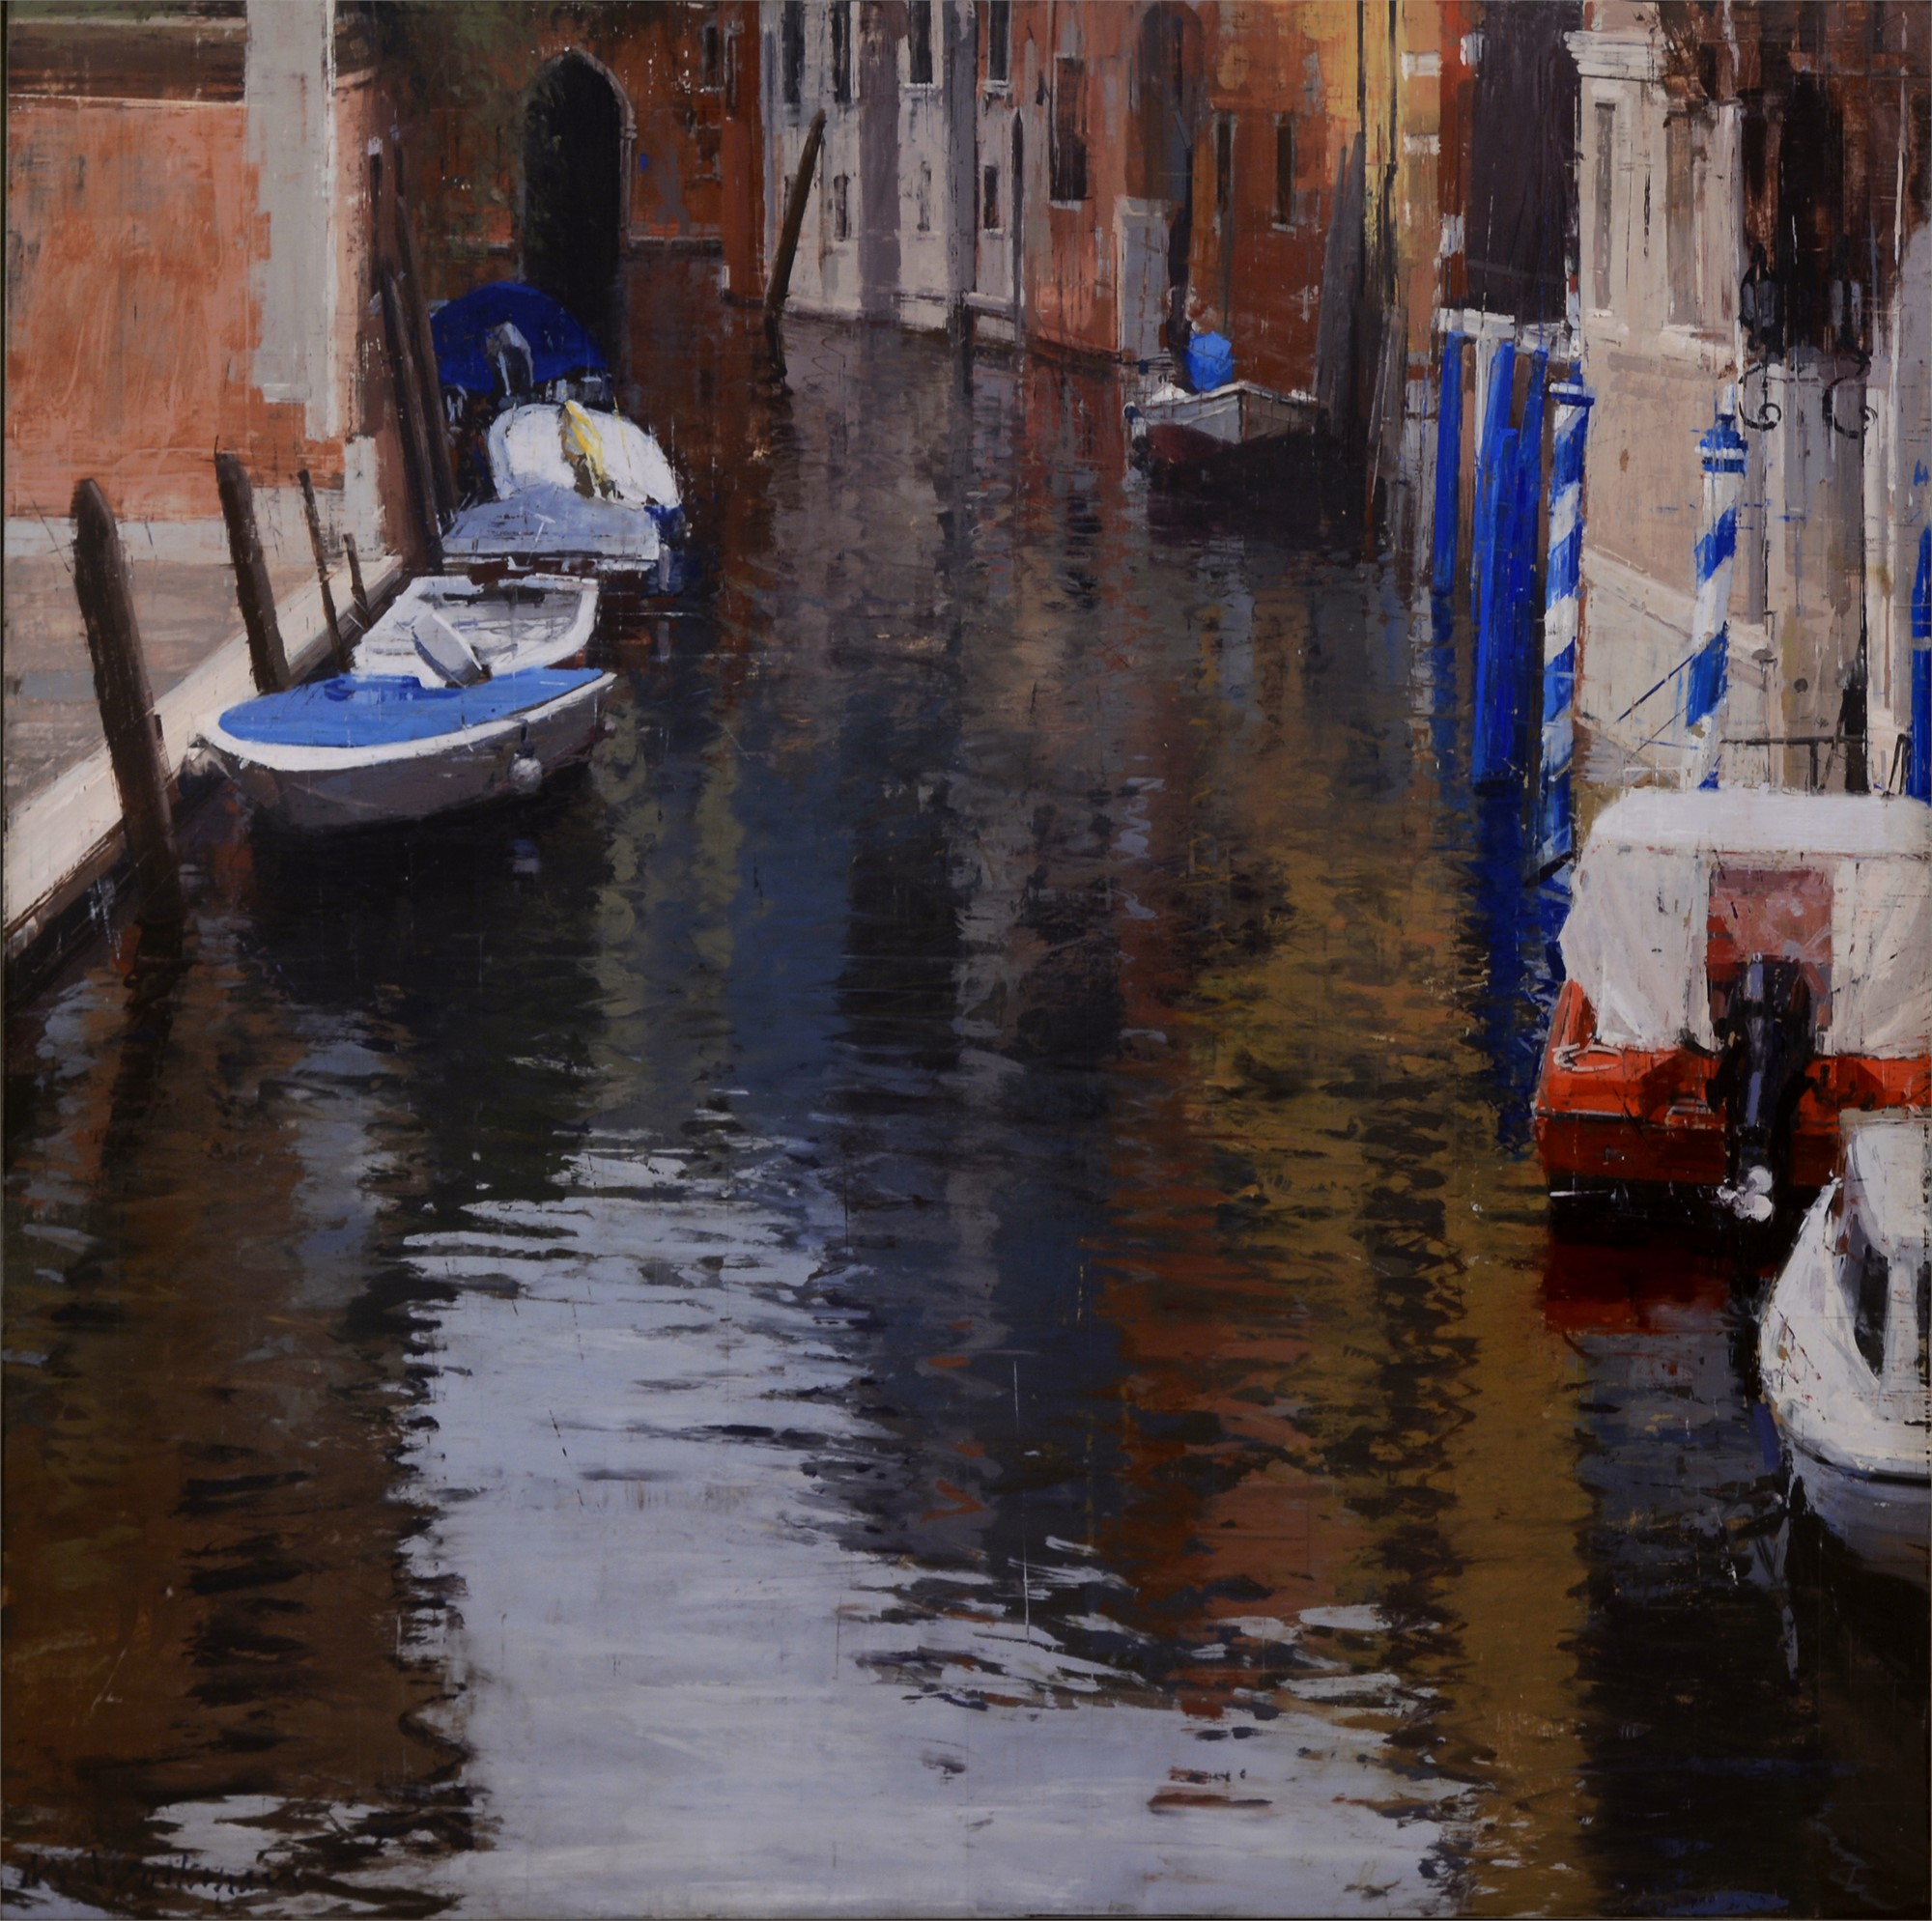 Venice with Rain 2 by Michael Workman